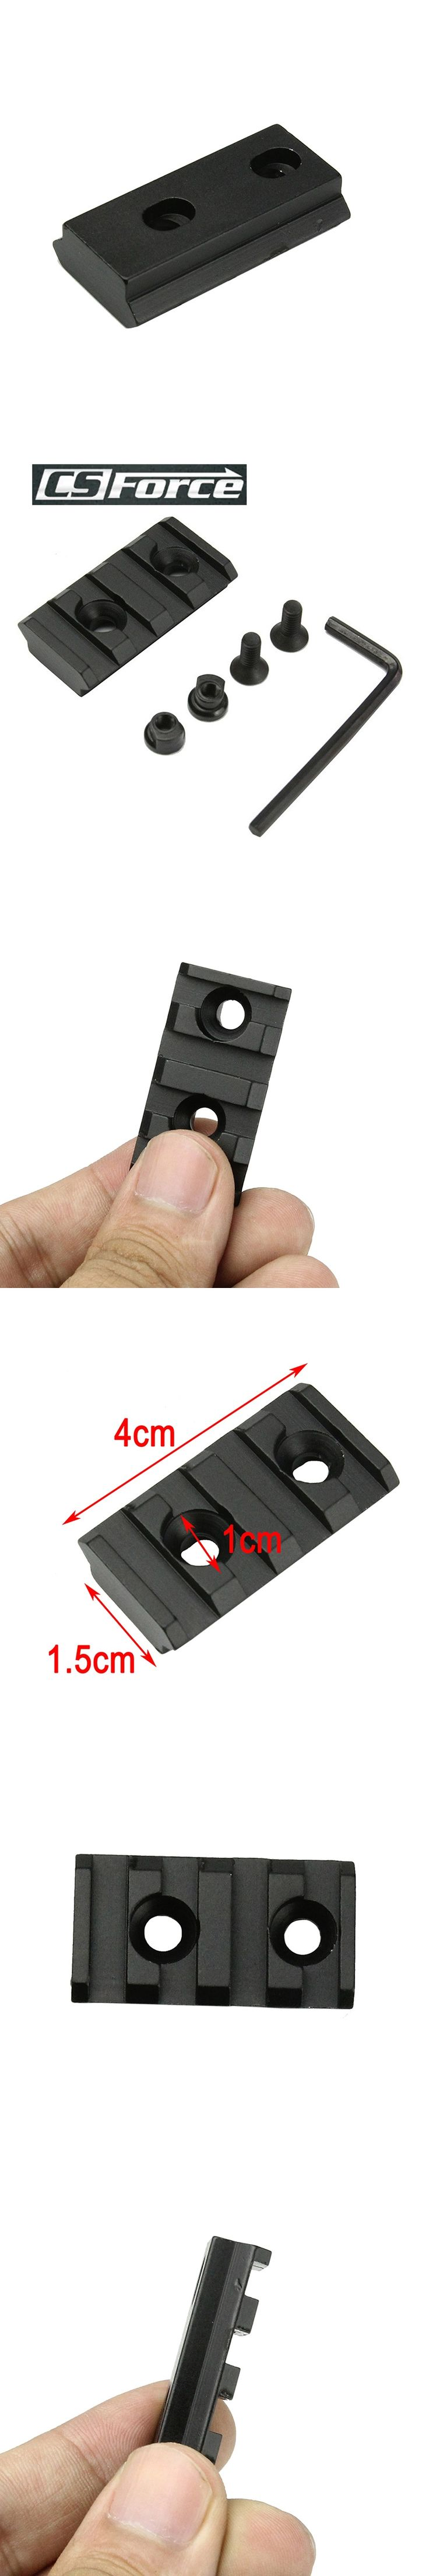 Tactical Aluminium Alloy 4 Slots Quick Release QD 15mm Rail Base Picatinny Scope Weaver Rail Mount Airsoft Rifle Gun Scope Base